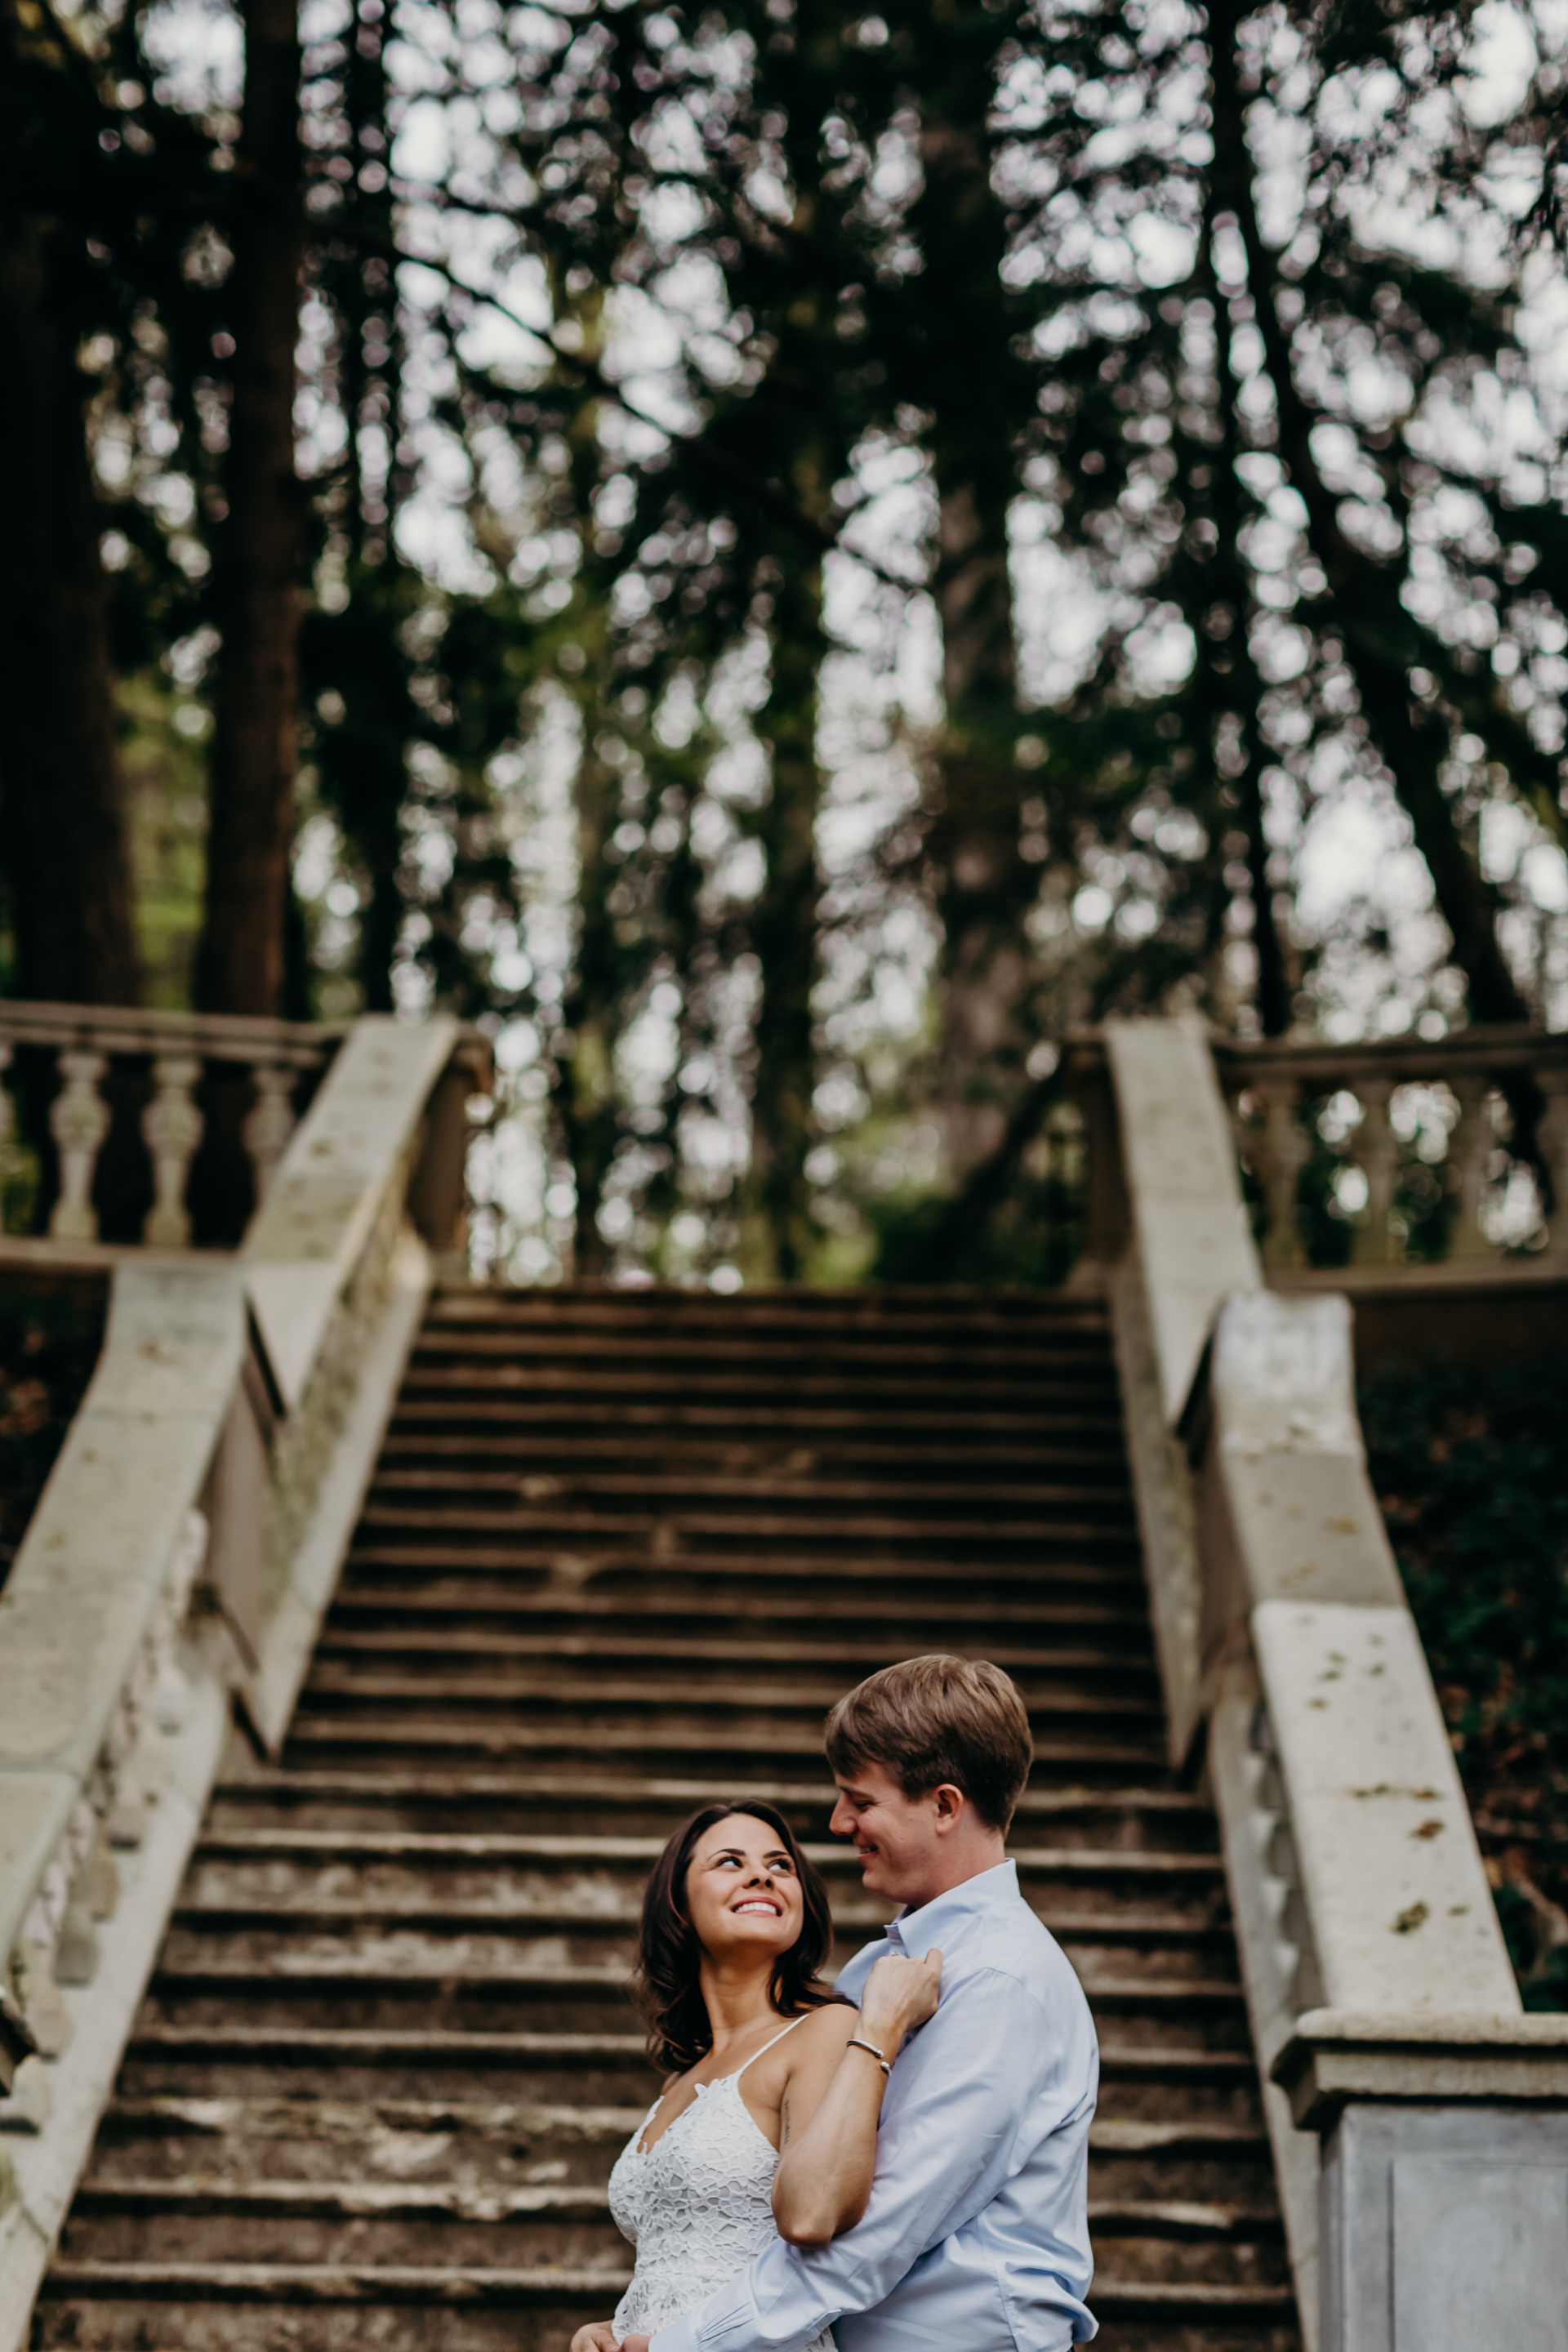 Gianna Keiko Atlanta NYC California Wedding Elopement Photographer_ Engagement-23.jpg